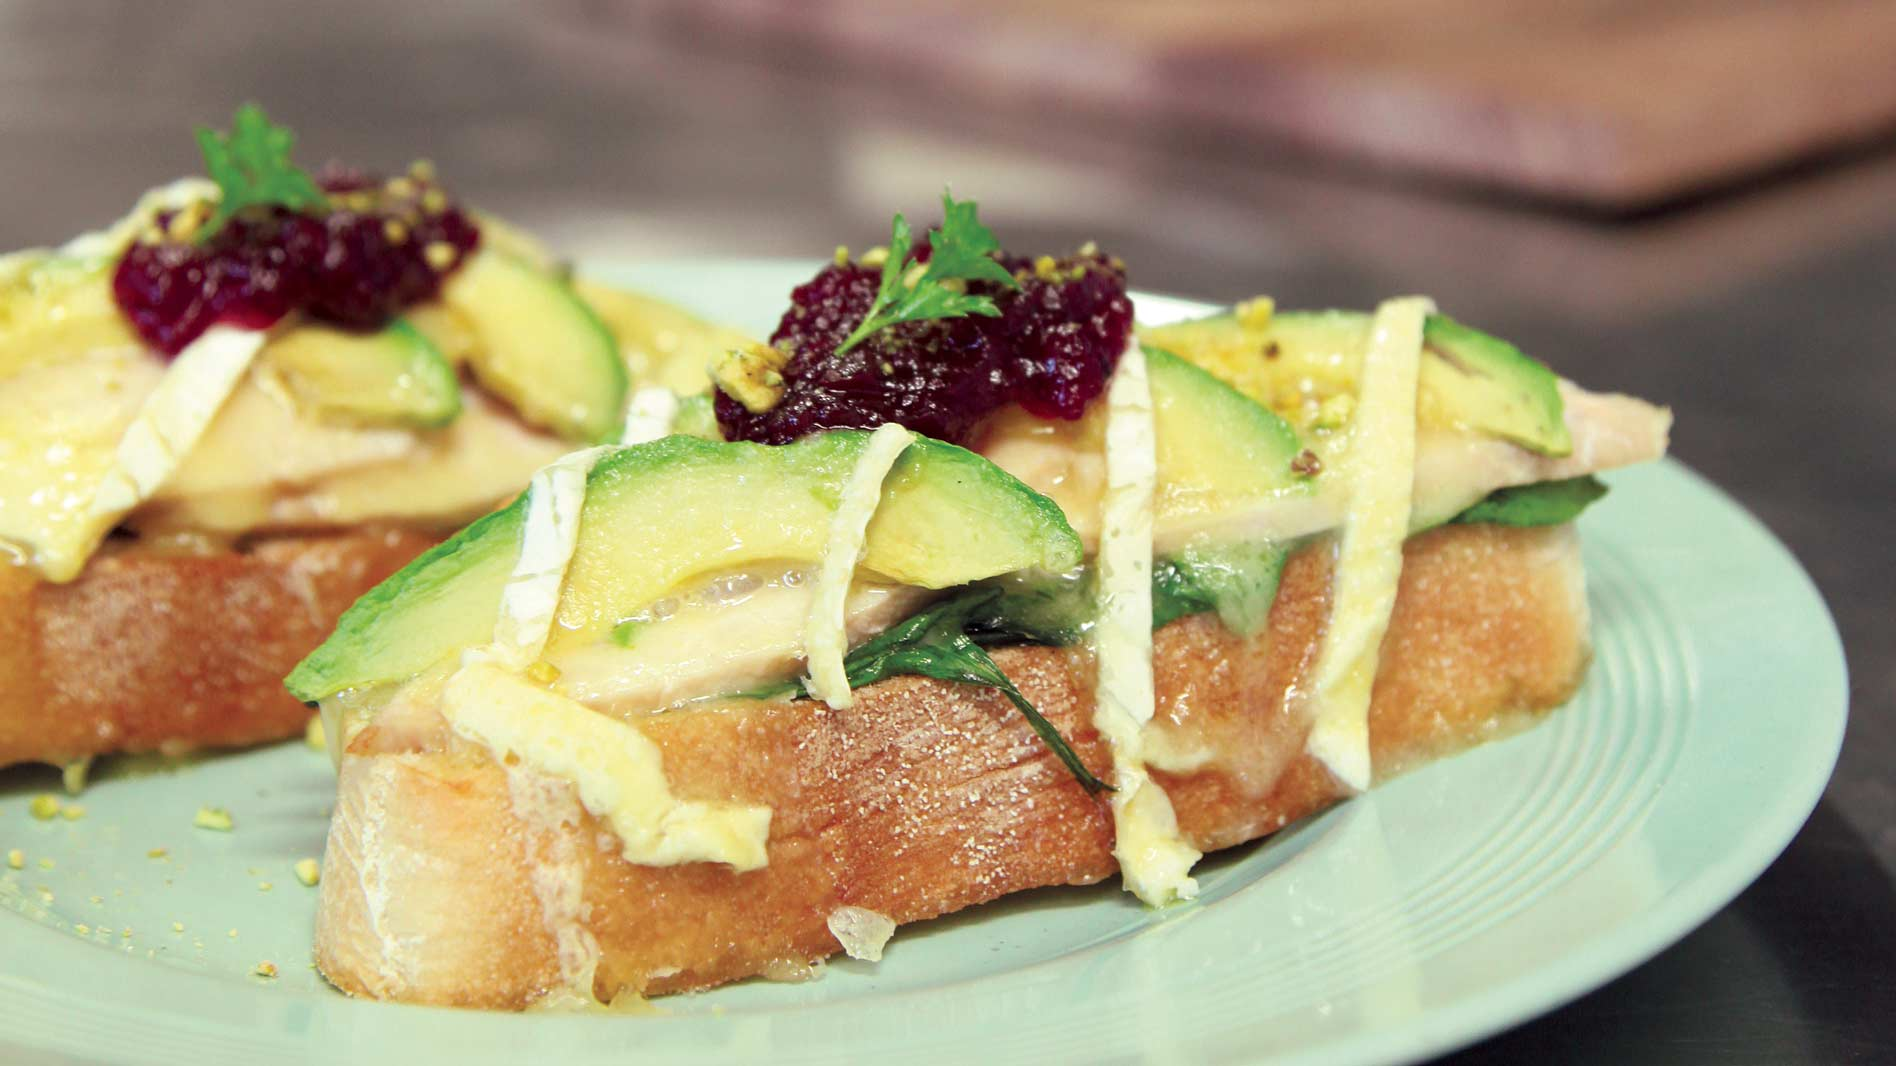 Roasted Turkey and Cranberry Melt with Avocado, Spinach and Brie